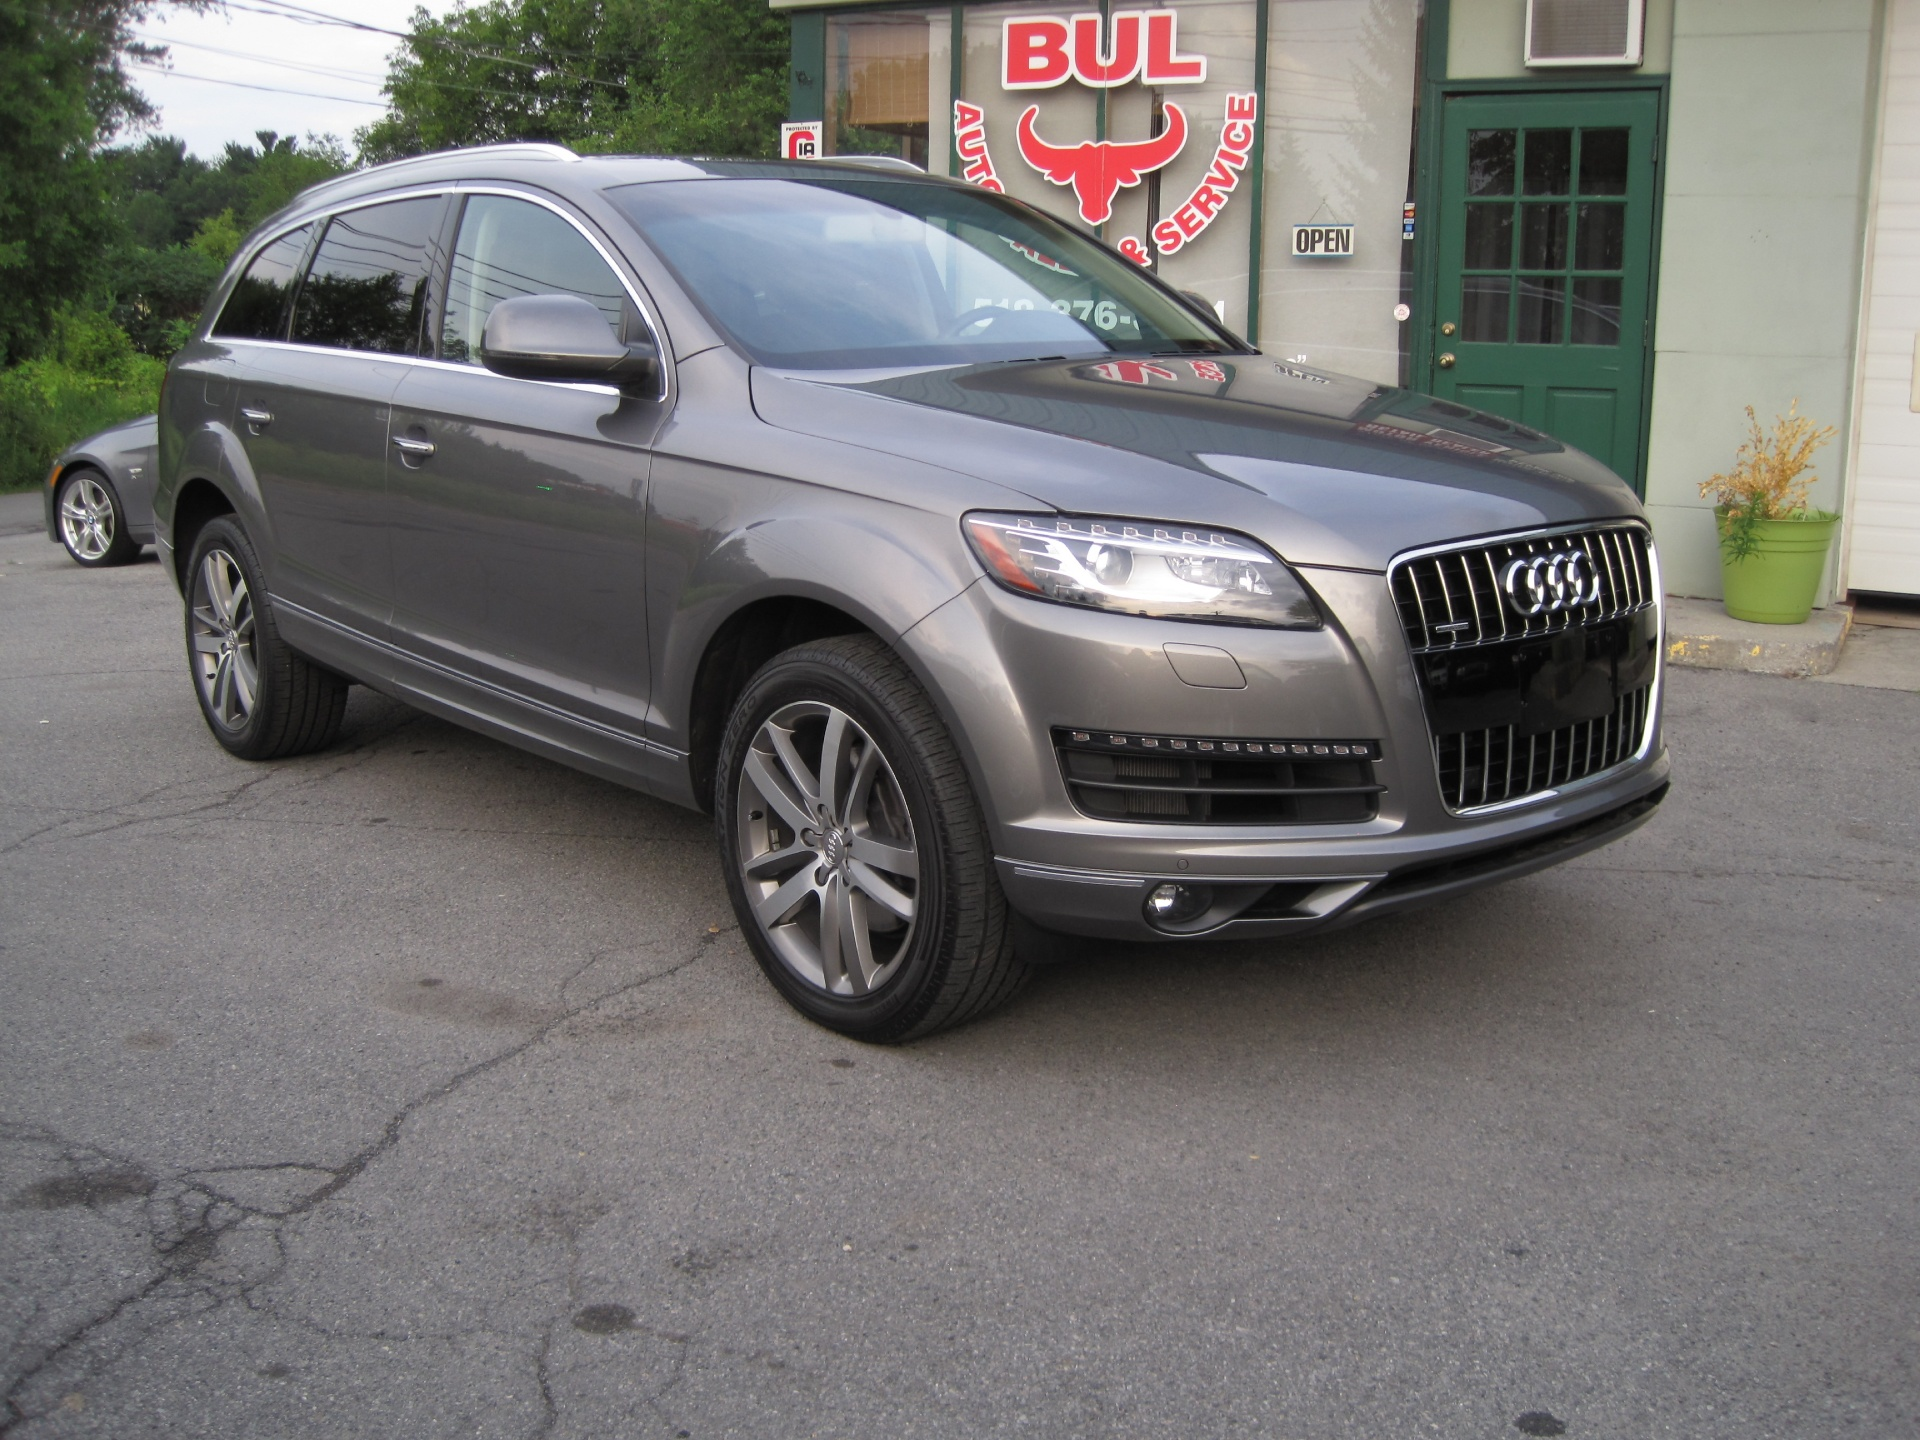 2013 audi q7 3 0t quattro premium plus led and xenons navigation 3rd row pano roof stock 15091. Black Bedroom Furniture Sets. Home Design Ideas